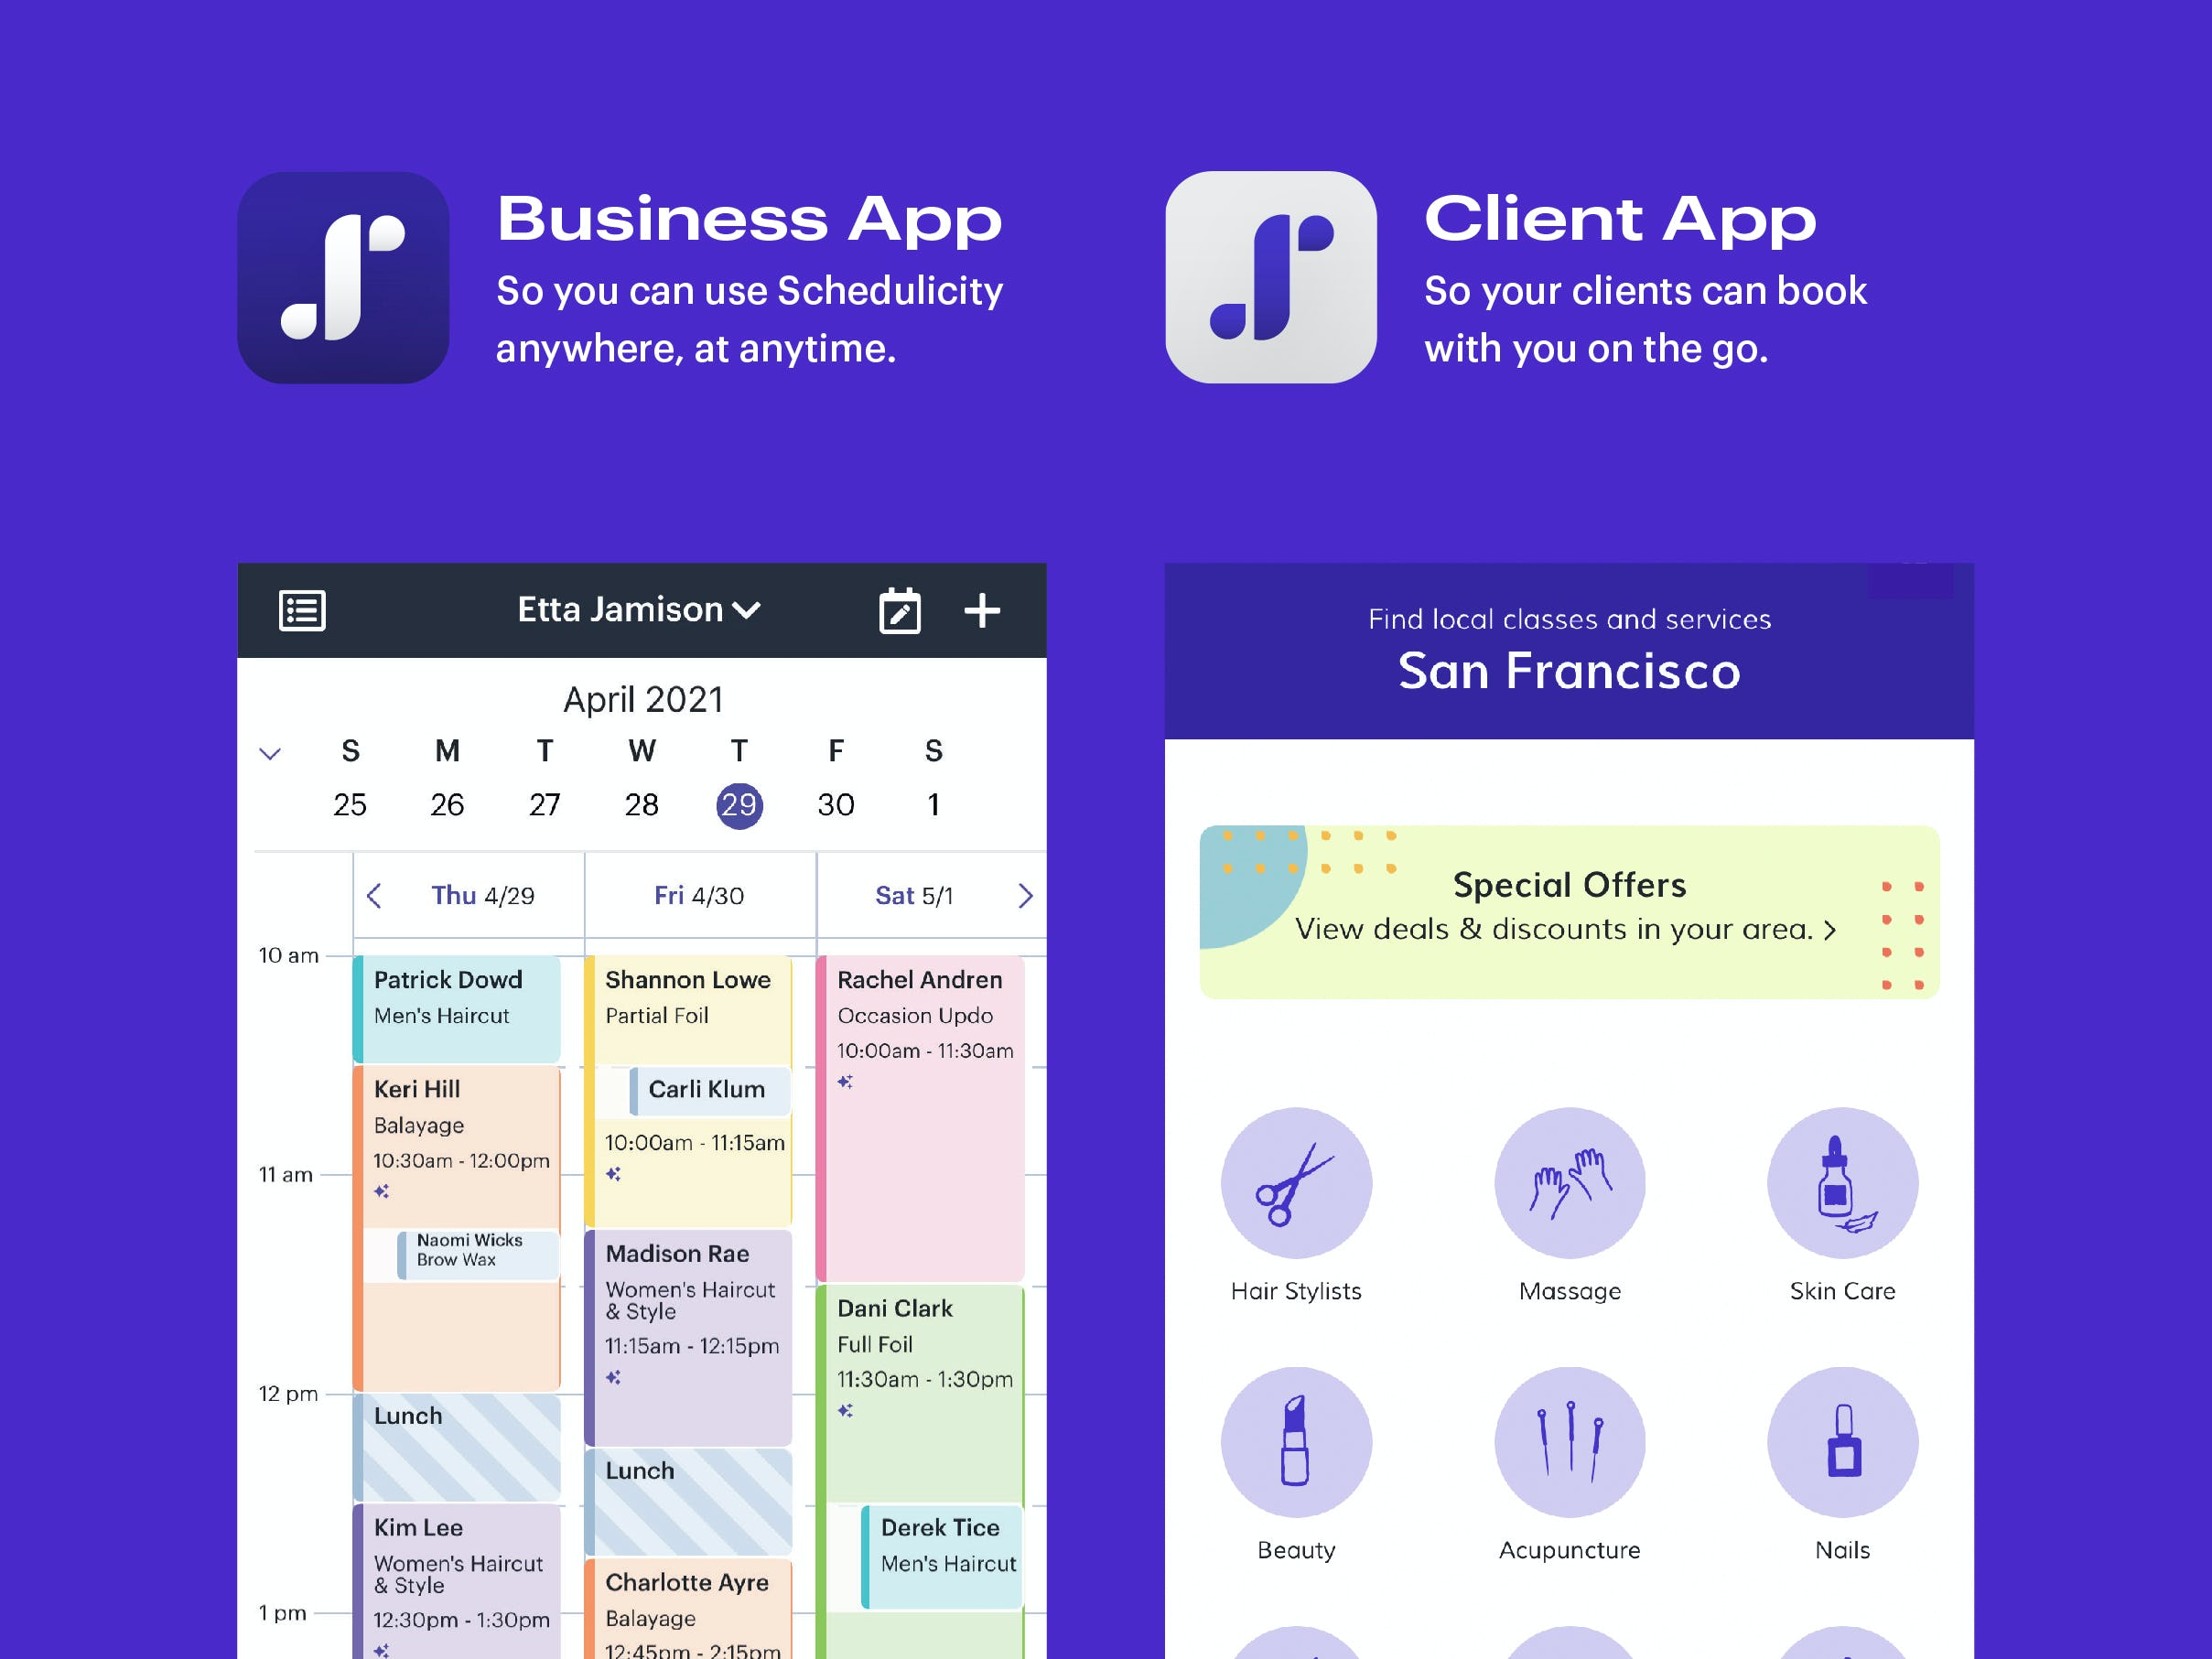 Schedulicity Software - Business App + Client App: So you can use Schedulicity anywhere, at anytime and your clients can book with you on the go.